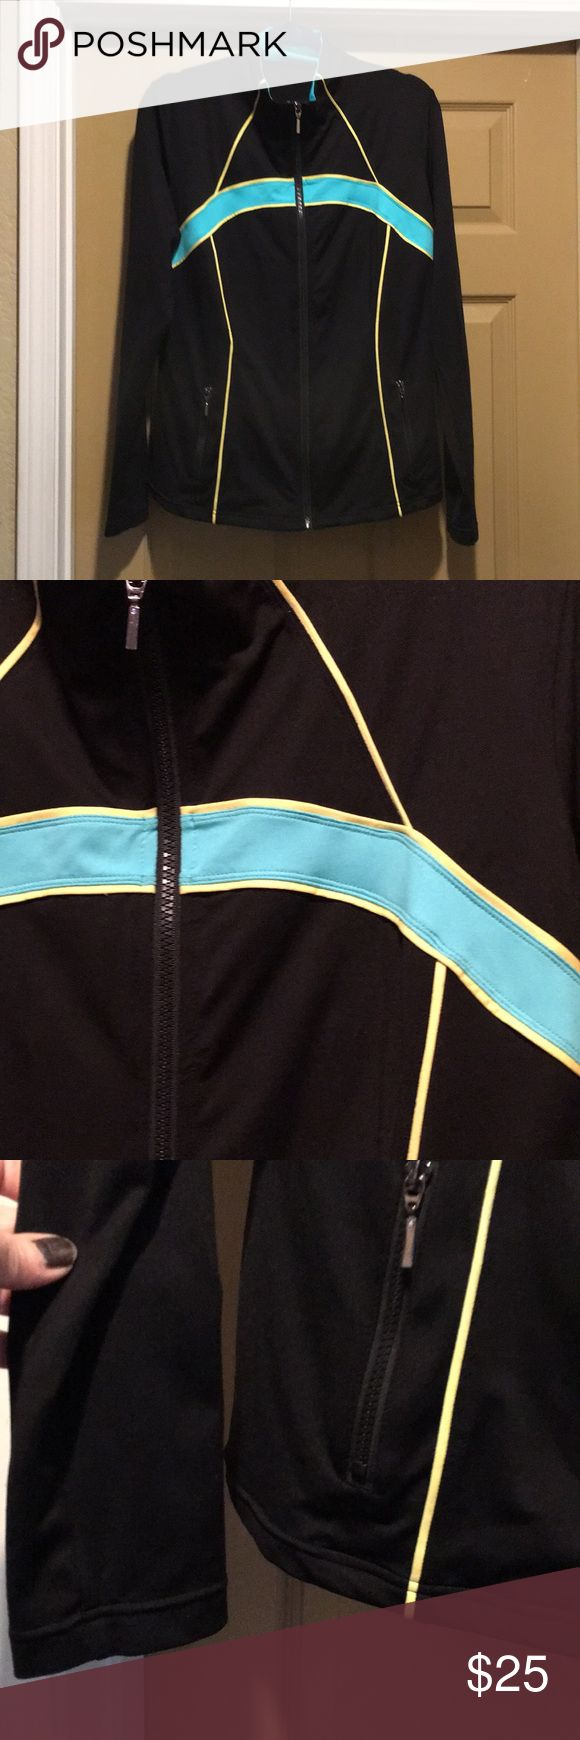 "Boston Proper Jacket Boston Proper Jacket. Size large. Black with blue and yellow. Used excellent condition. Measures 21"" from armpit to armpit. Length 25"" from top to bottom. ❌No Trades❌ Proceeds go towards feeding the homeless❌ Bundle to save, I have hundreds of items to choose from❌ Boston Proper Jackets & Coats"